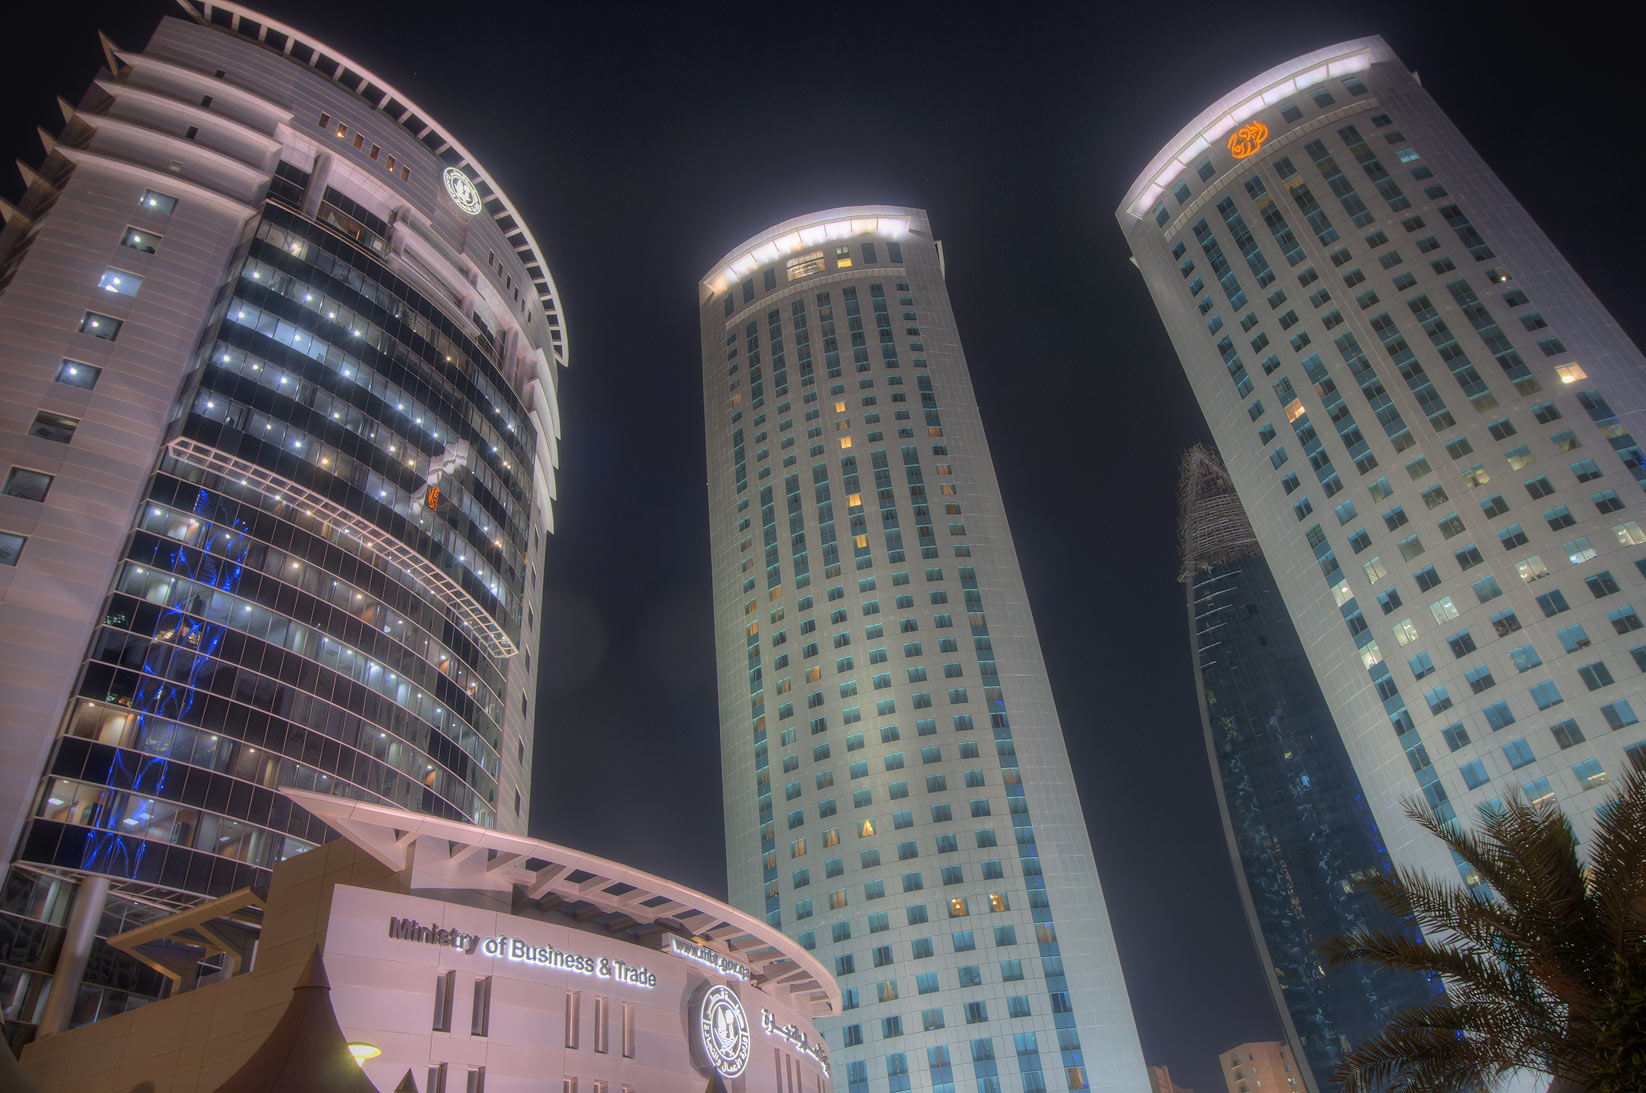 Ministry of Business and Trade and Al Fardan Towers in West Bay at evening. Doha, Qatar